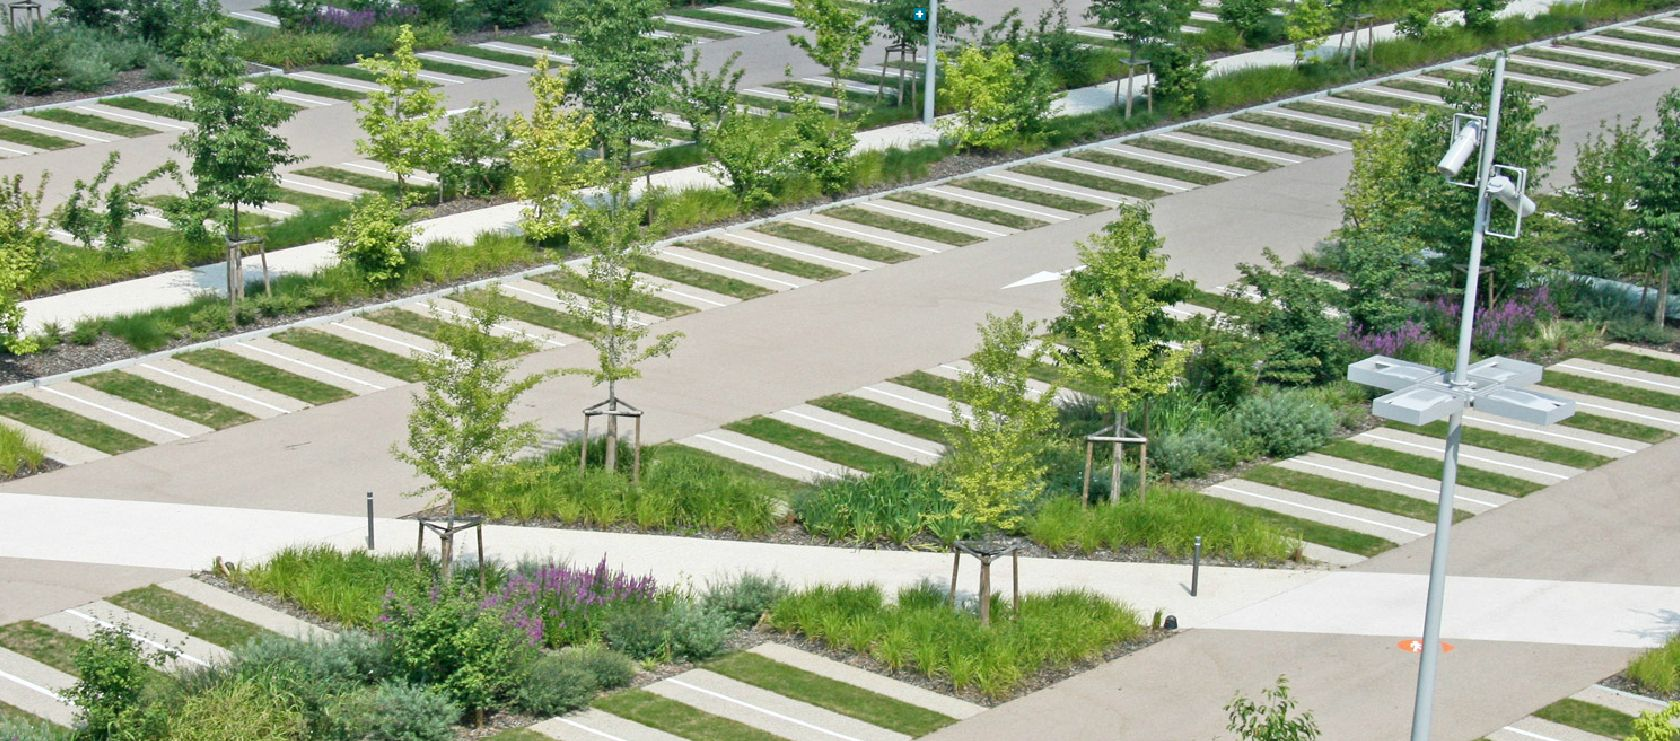 Landscape architecture parking lot plan landscape a for Surface design landscape